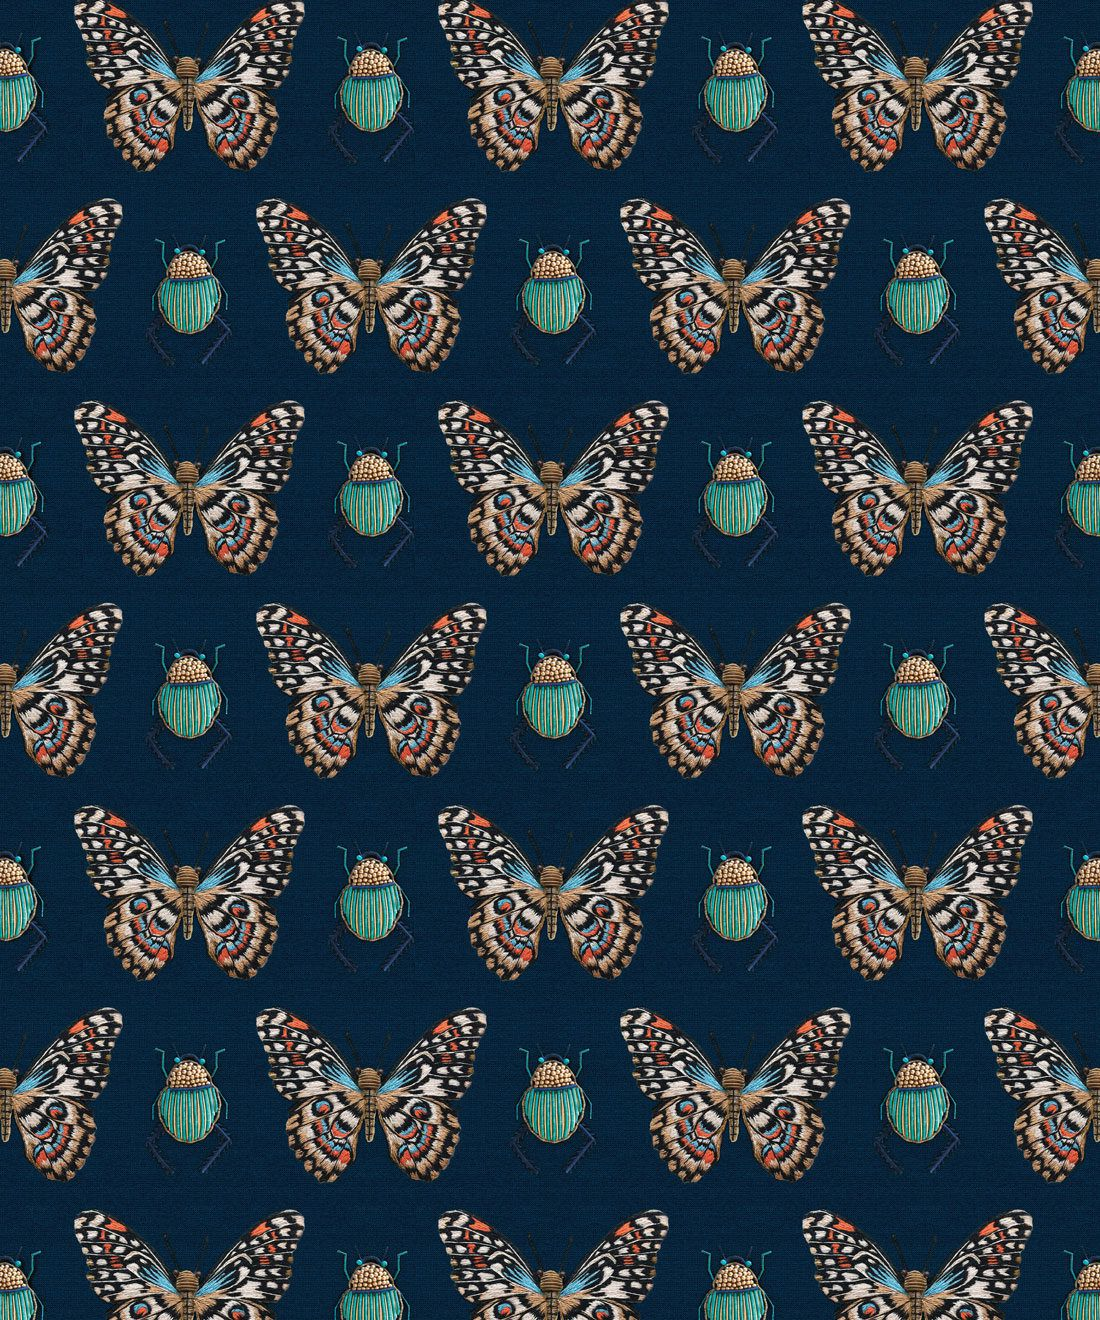 Bug & Butterfly Wallpaper • Milton & King Australia • Swatch